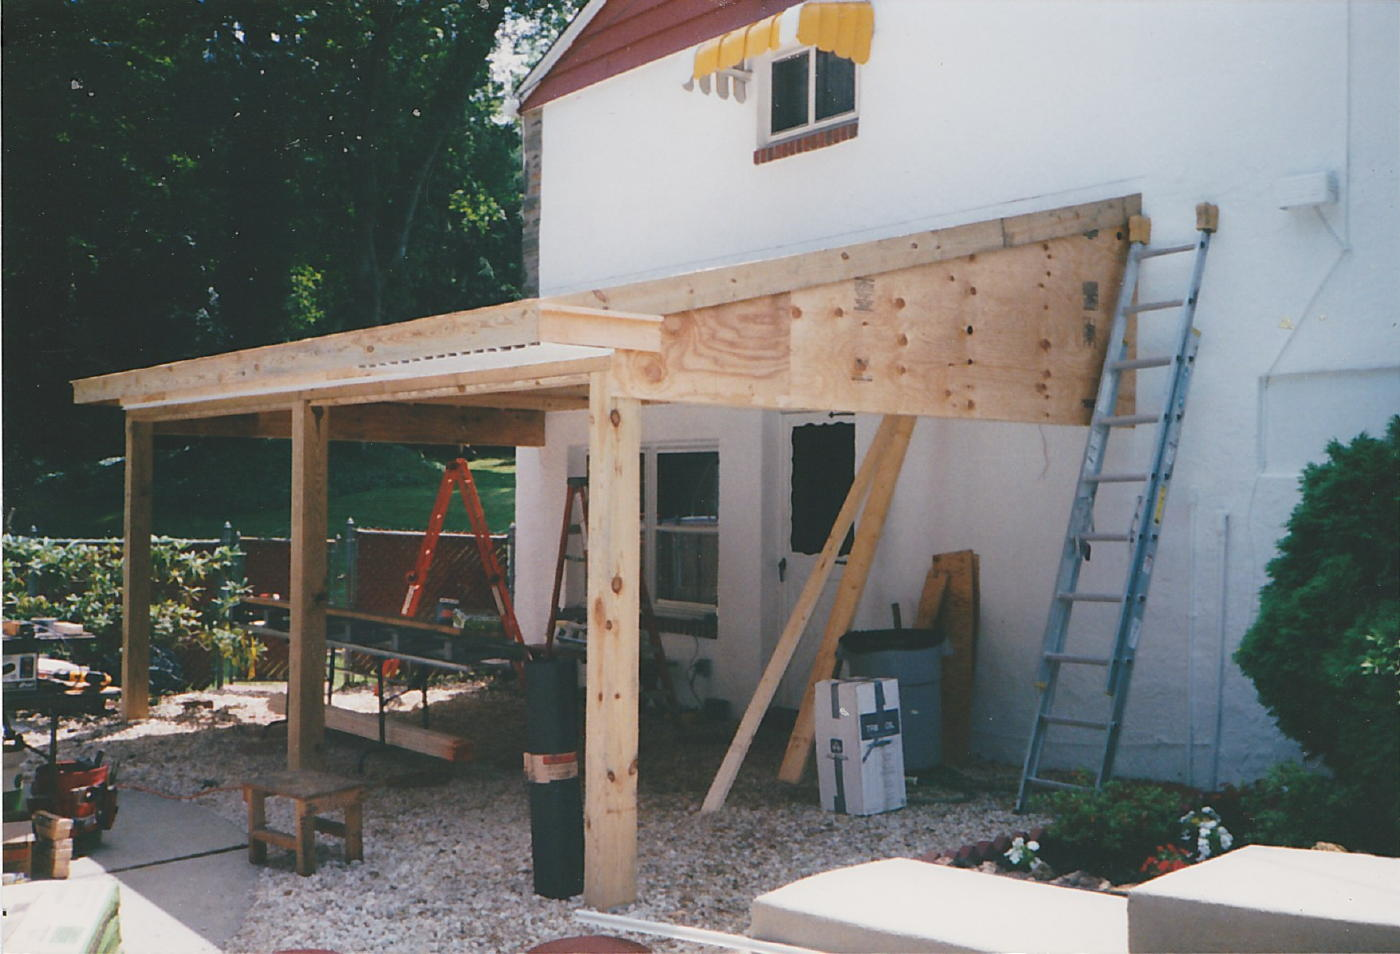 What Would You Call A Roof Over A Patio? - Architecture ... on Roof For Patio Ideas id=57910